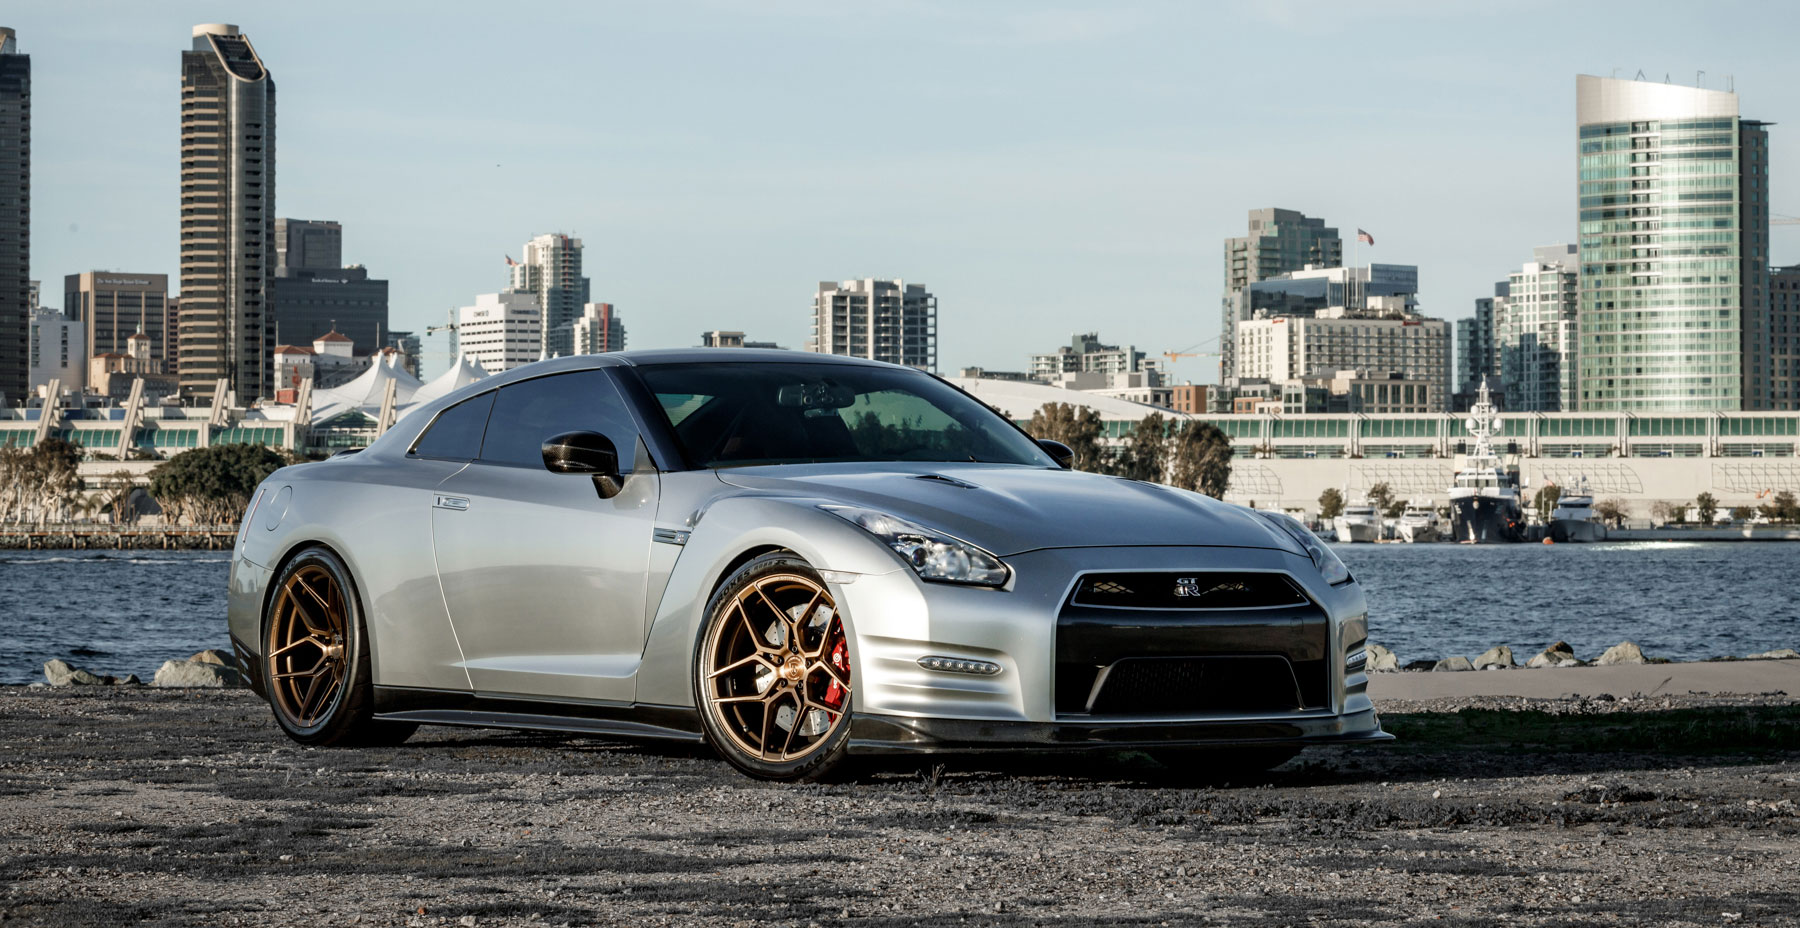 Gray Nissan GTR R35 x Rohana RFX11 Wheels (Finished in Brushed Bronze)